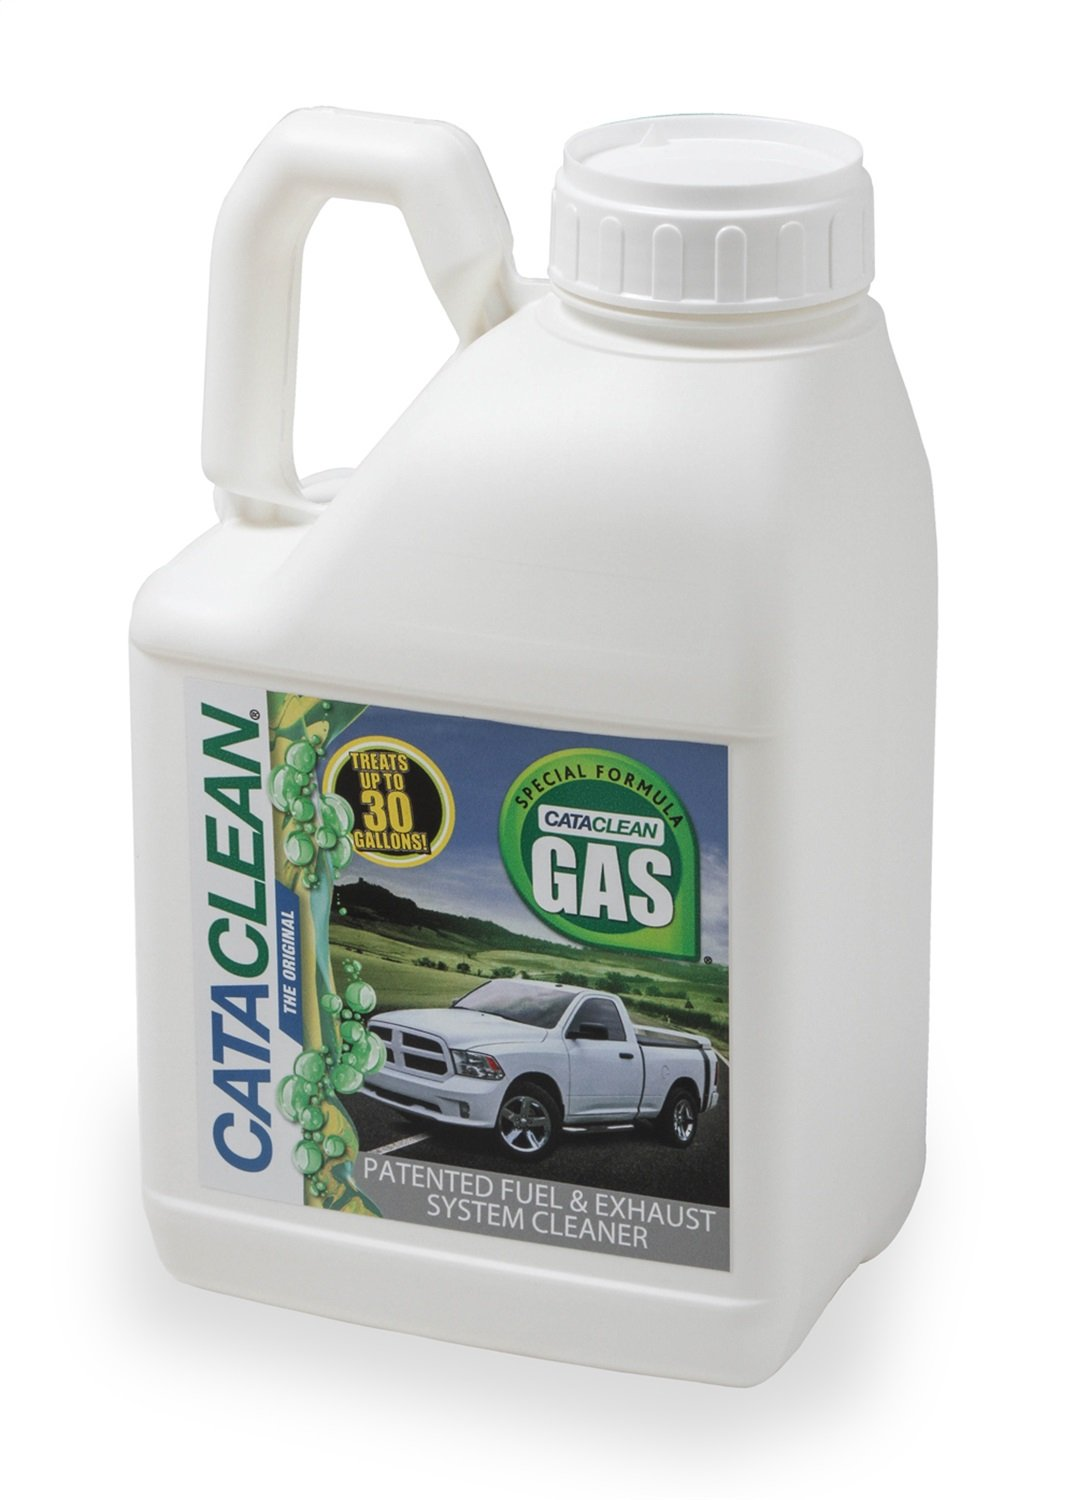 Cataclean 120018CAT Cataclean Fuel And Exhaust System Cleaner Special Formula For Use w/Gasoline Engines 3 Liters Cataclean Fuel And Exhaust System Cleaner by Cataclean